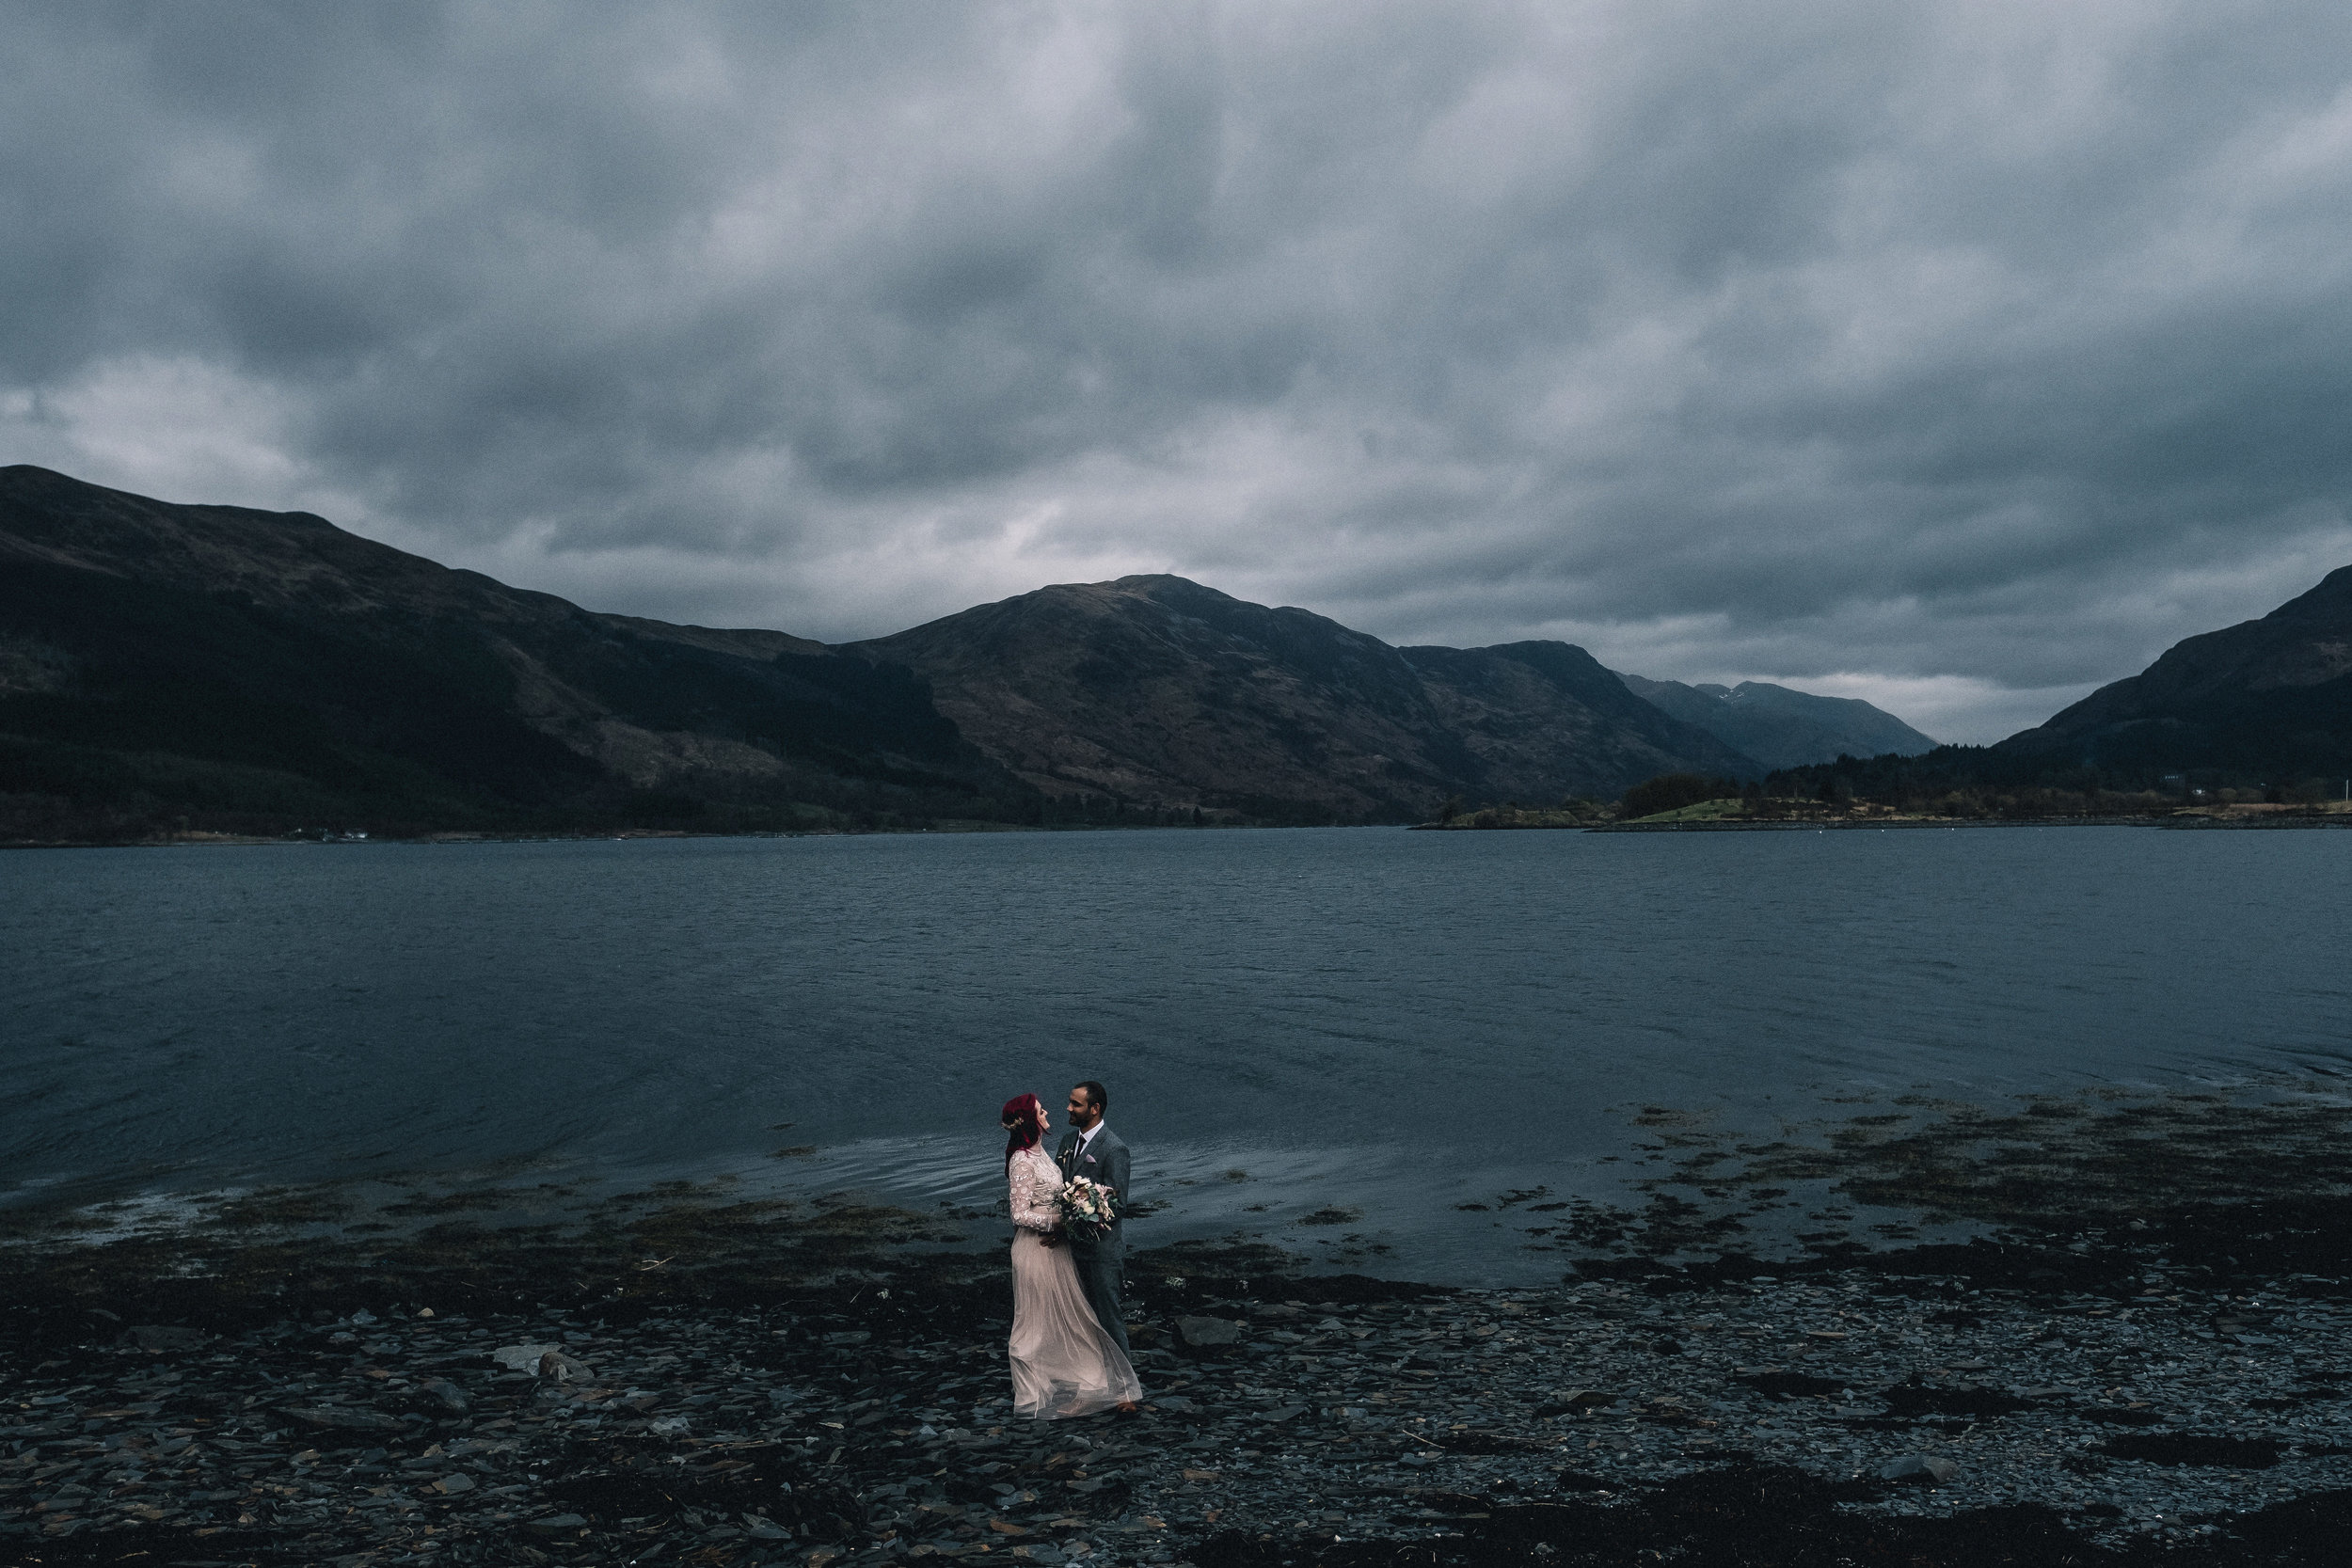 A couple stand on the banks of a loch in Glencoe